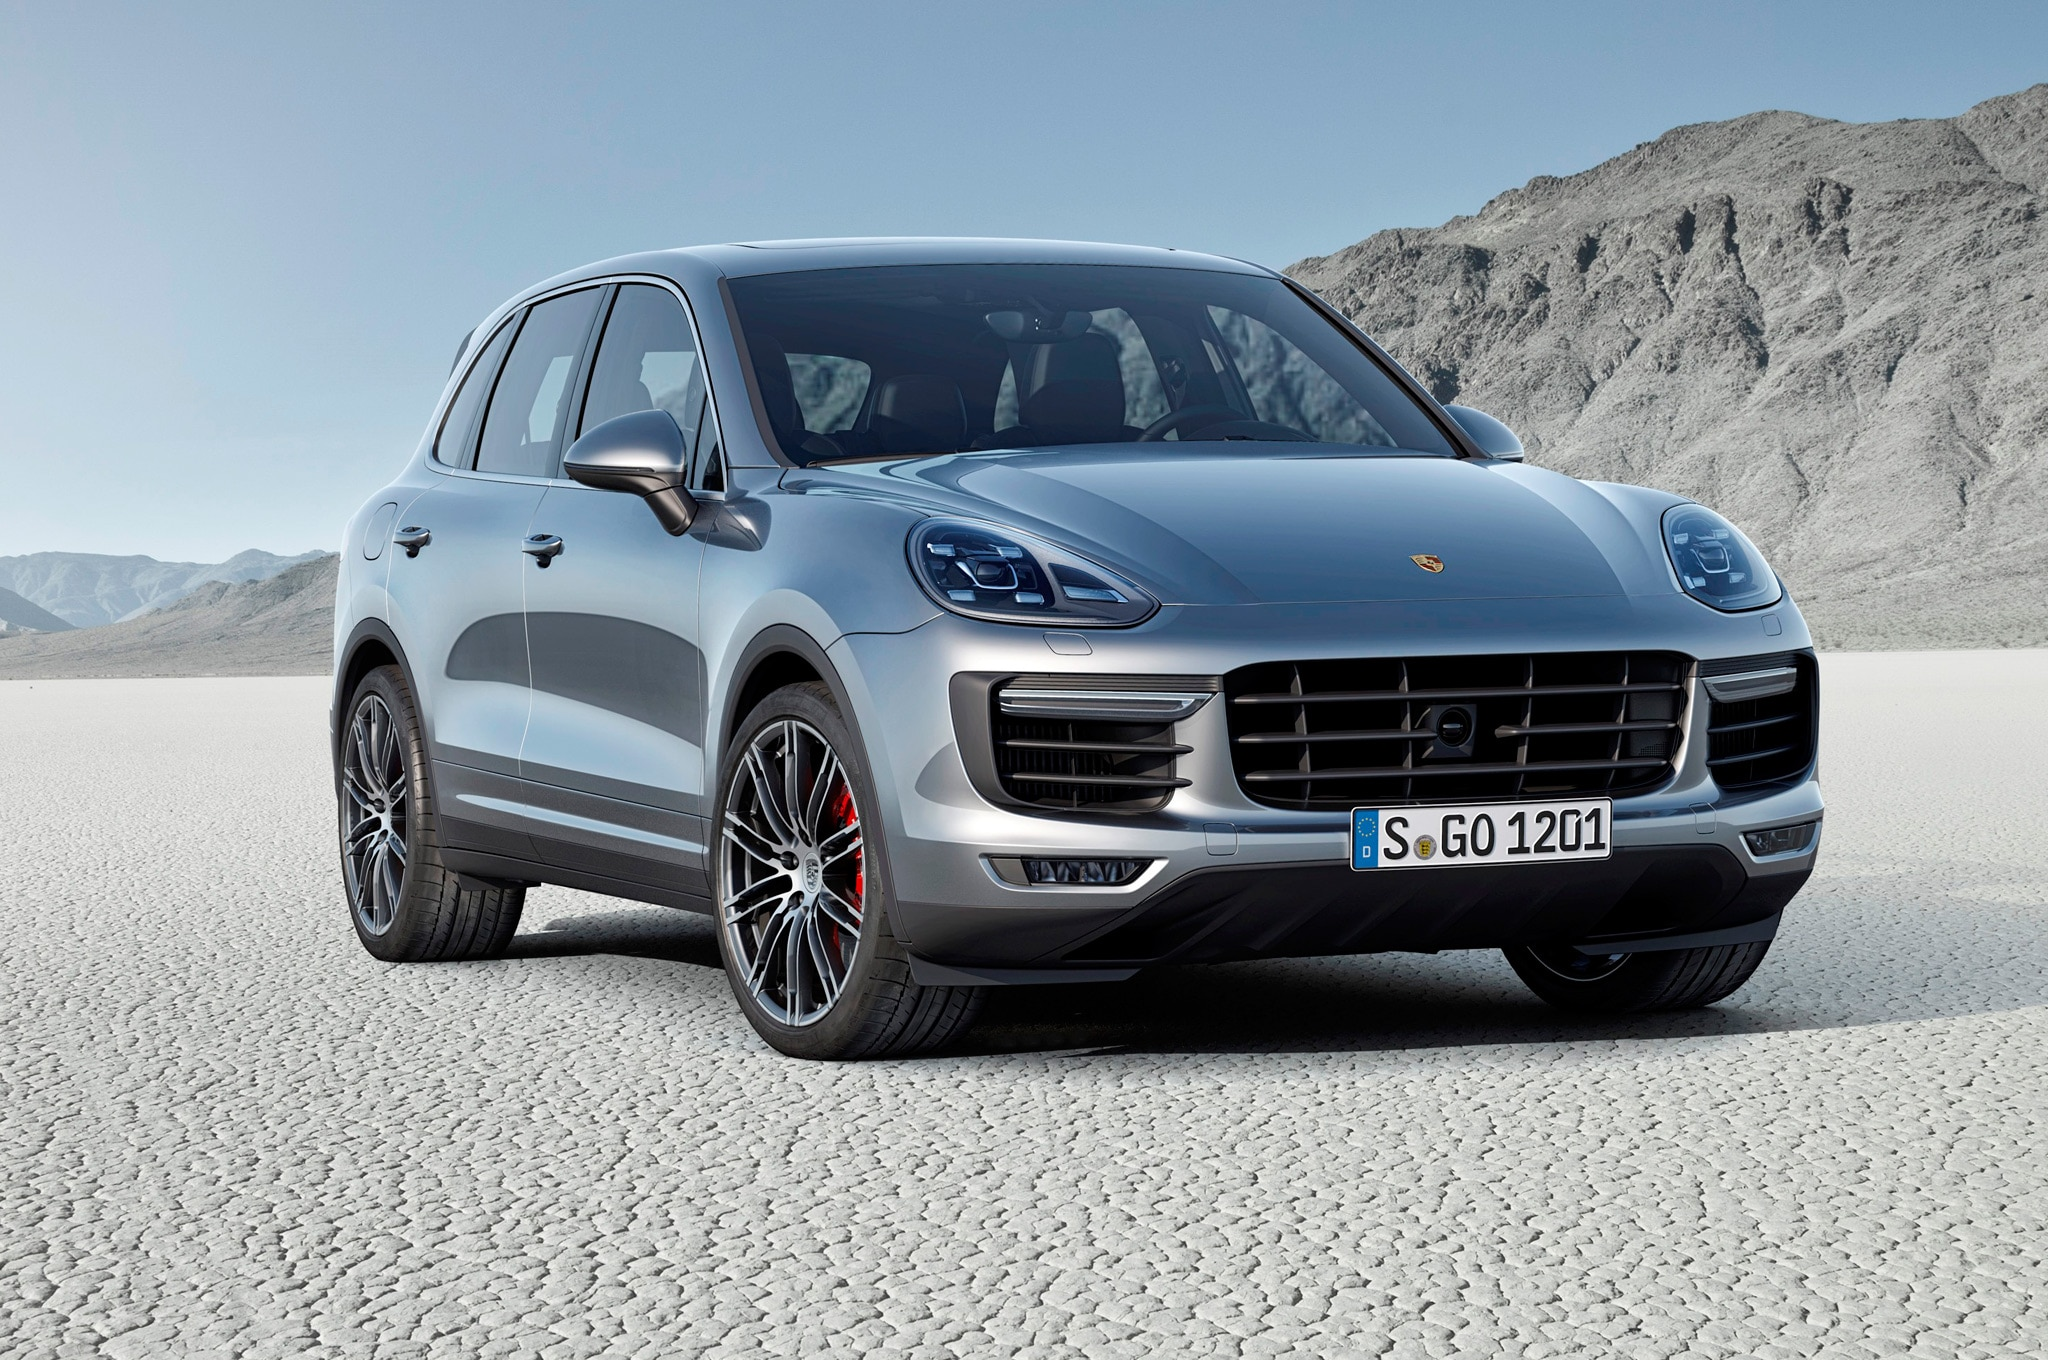 2015 Porsche Cayenne Turbo Front View1